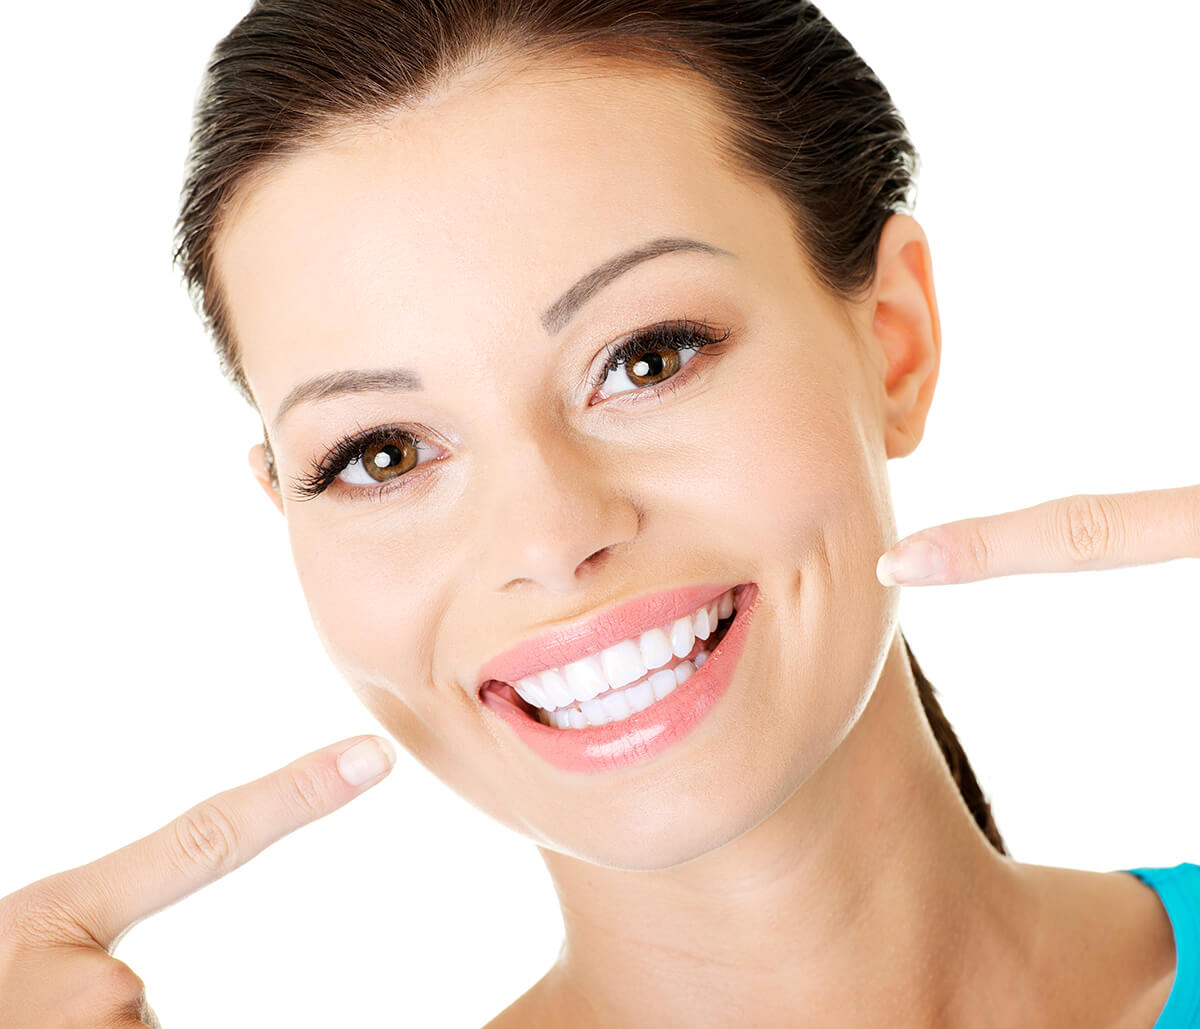 Arizona patients have access to professional teeth whitening for a whiter, brighter smile!